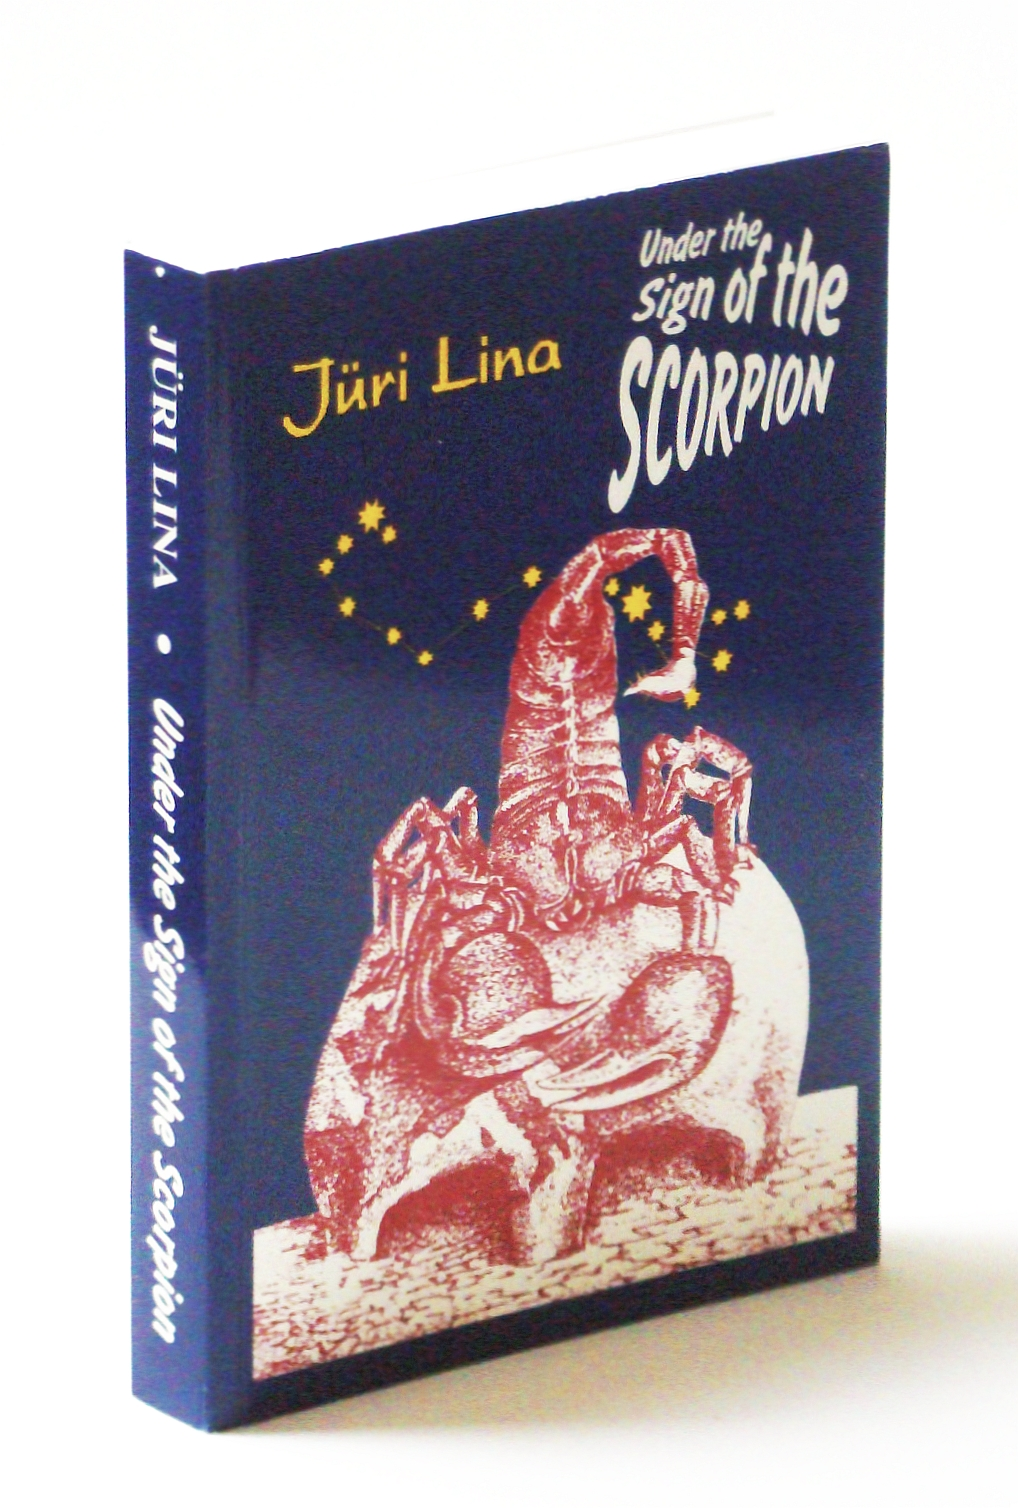 Image for Under the Sign of the Scorpion - The Rise and Fall of the Soviet Empire